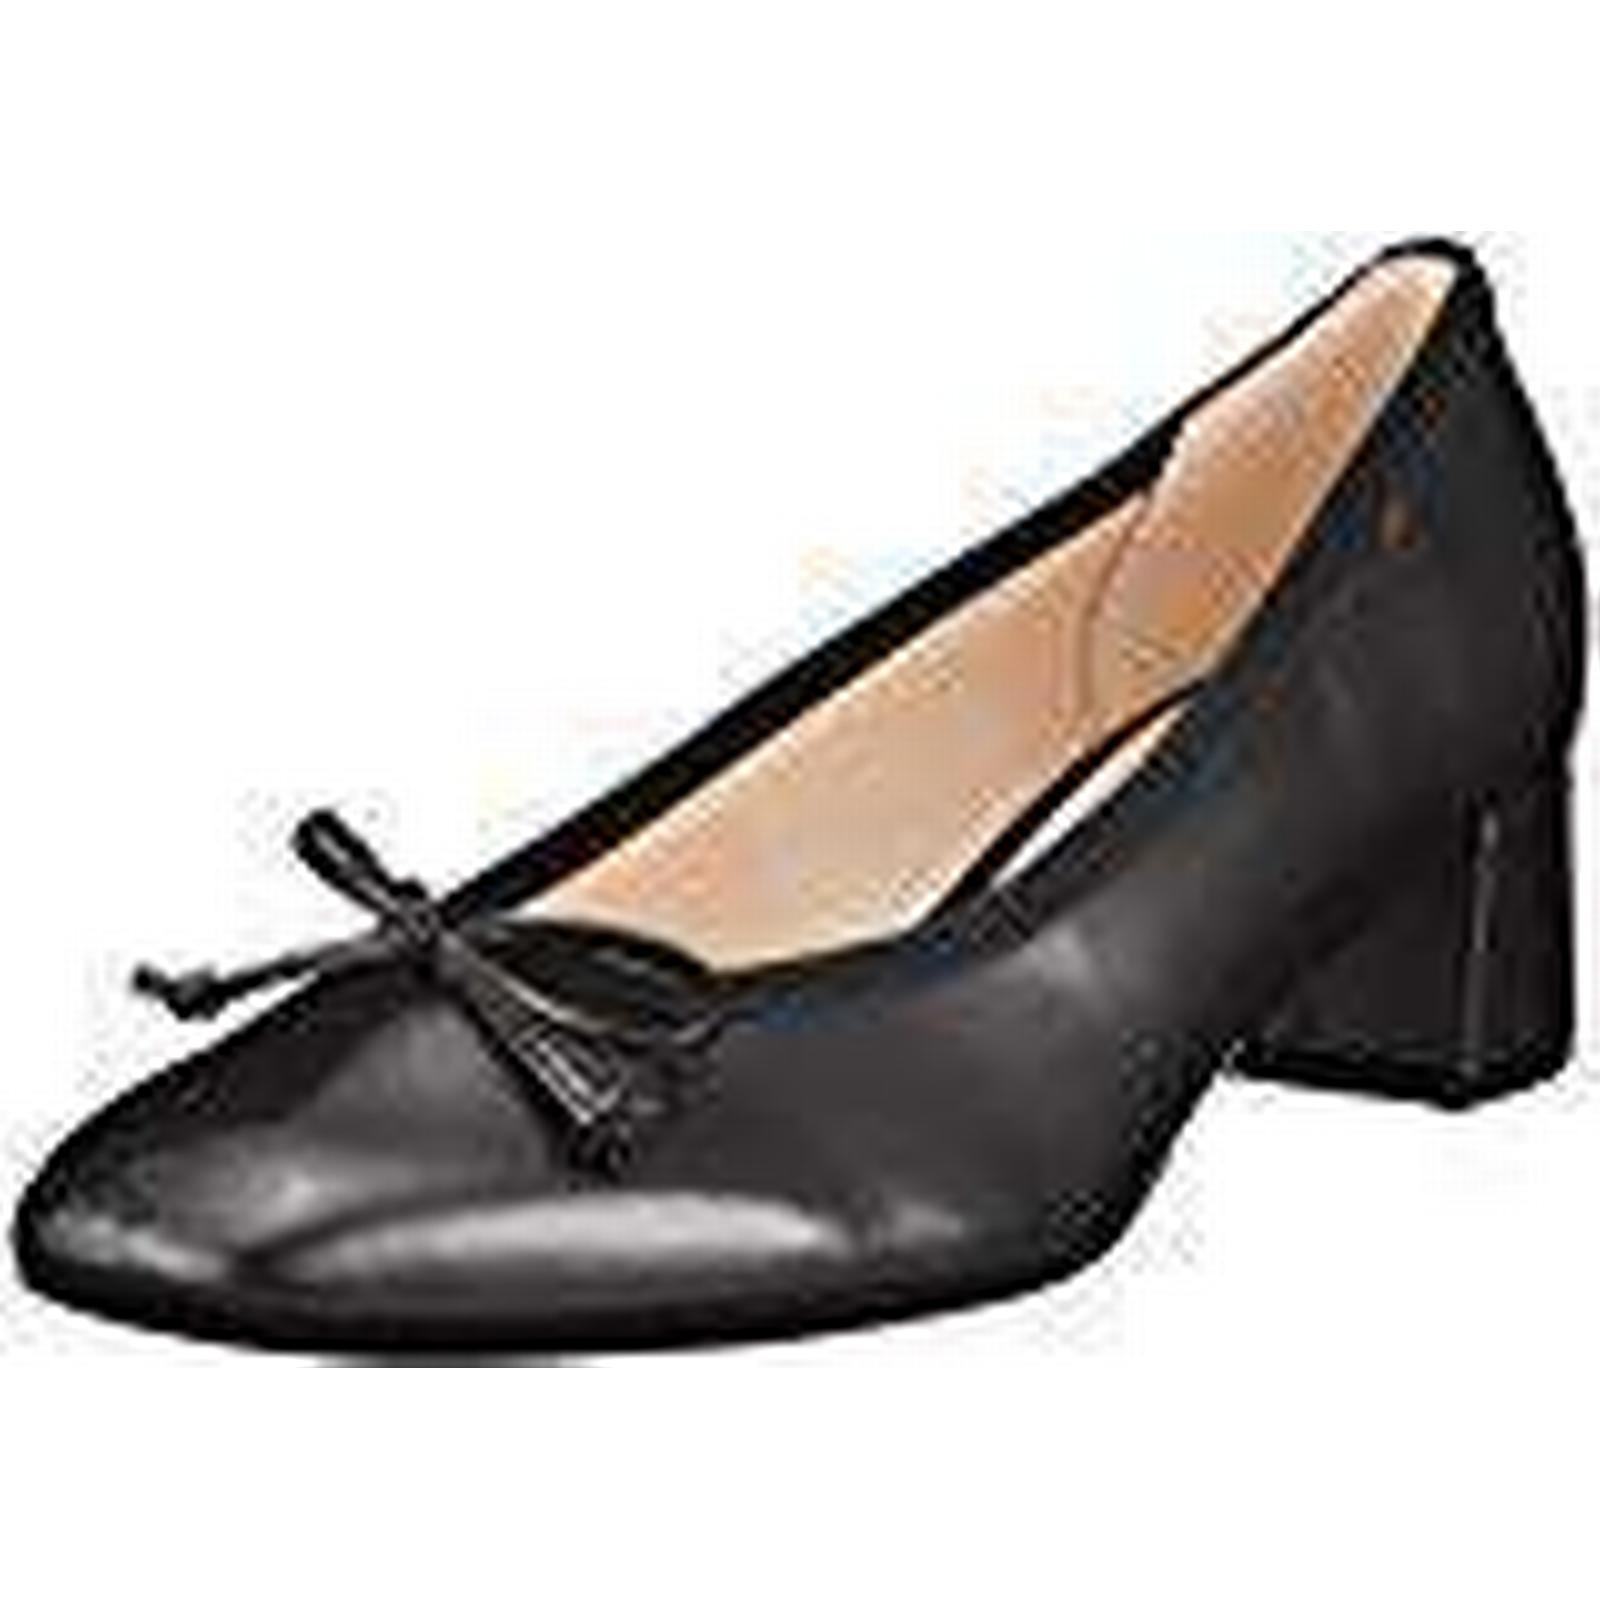 Gabor Shoes Women''s Basic Closed-Toe UK Pumps, Black (Schwarz), 8.5 UK Closed-Toe 956280